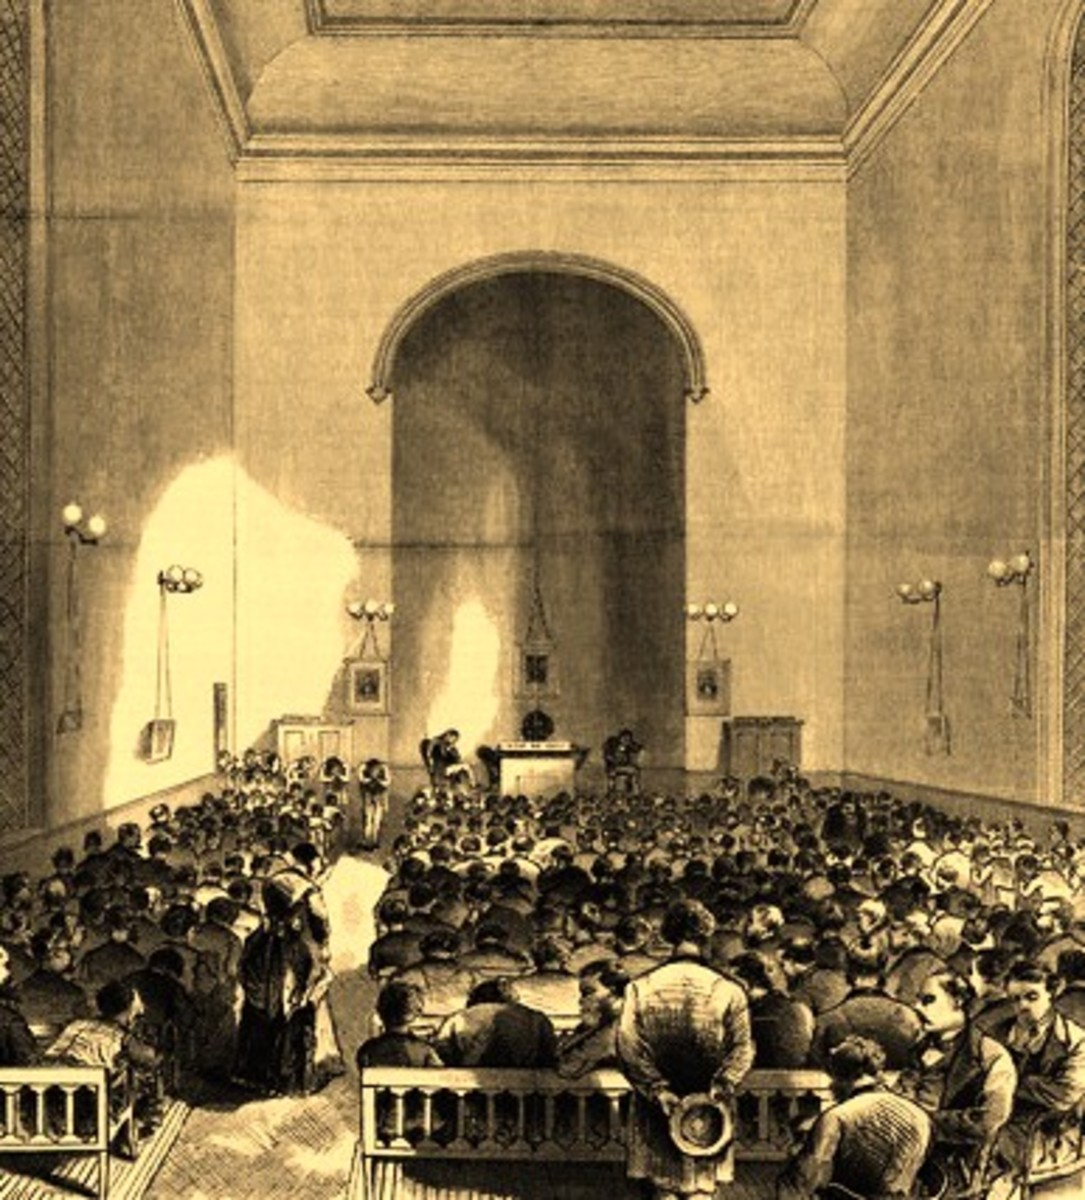 FULTON STREET PRAYER MEETING (1859)